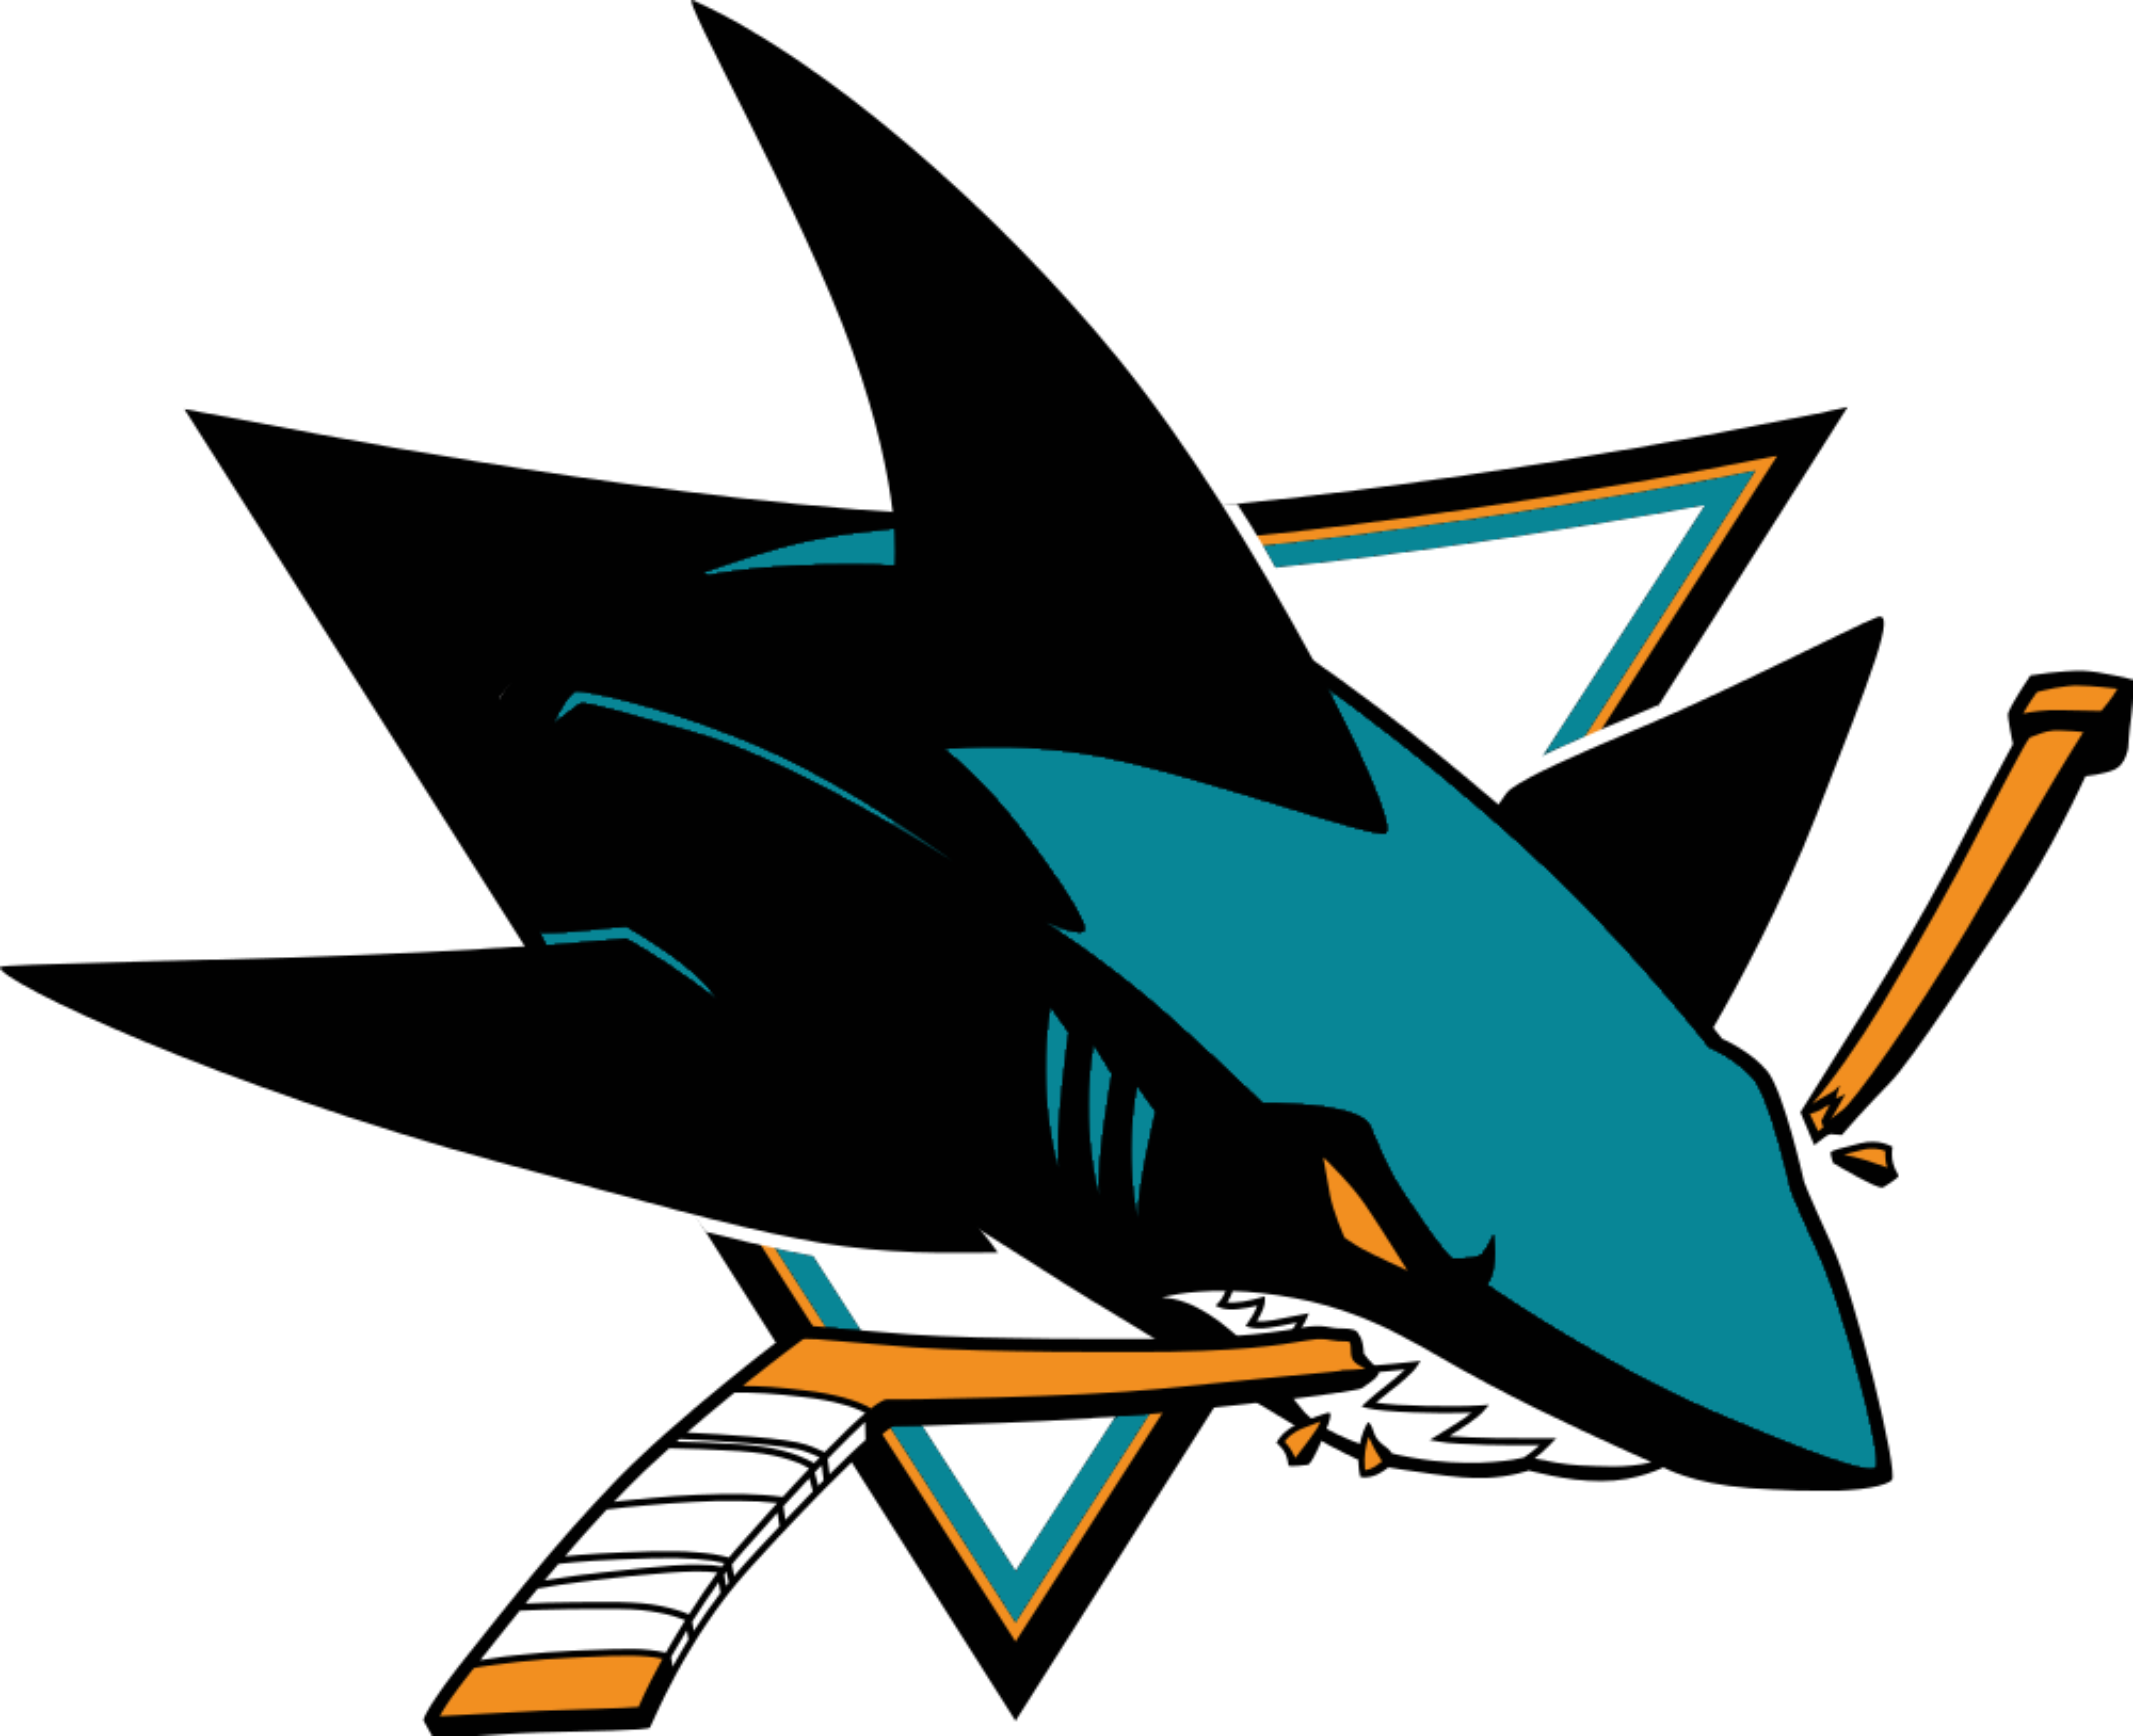 san jose sharks logos download giants baseball logo vector giant tiger logo vector